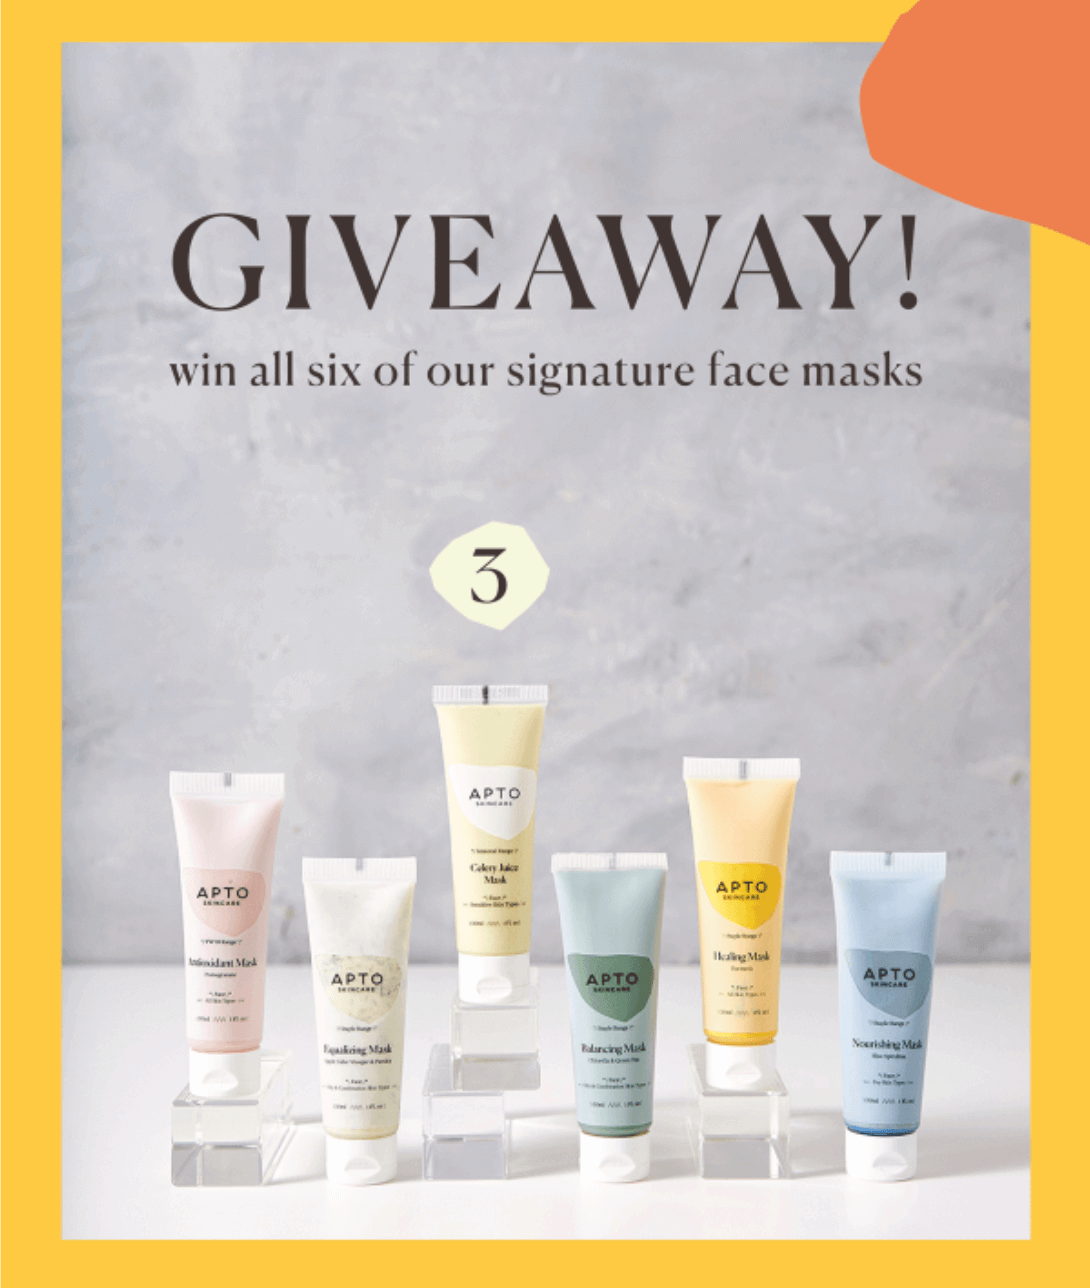 Apto Skincare ran a giveaway. This is an effective way to grow a list, and encourage product use and trial. Remarketing to this group will be easier, cheaper and more effective.